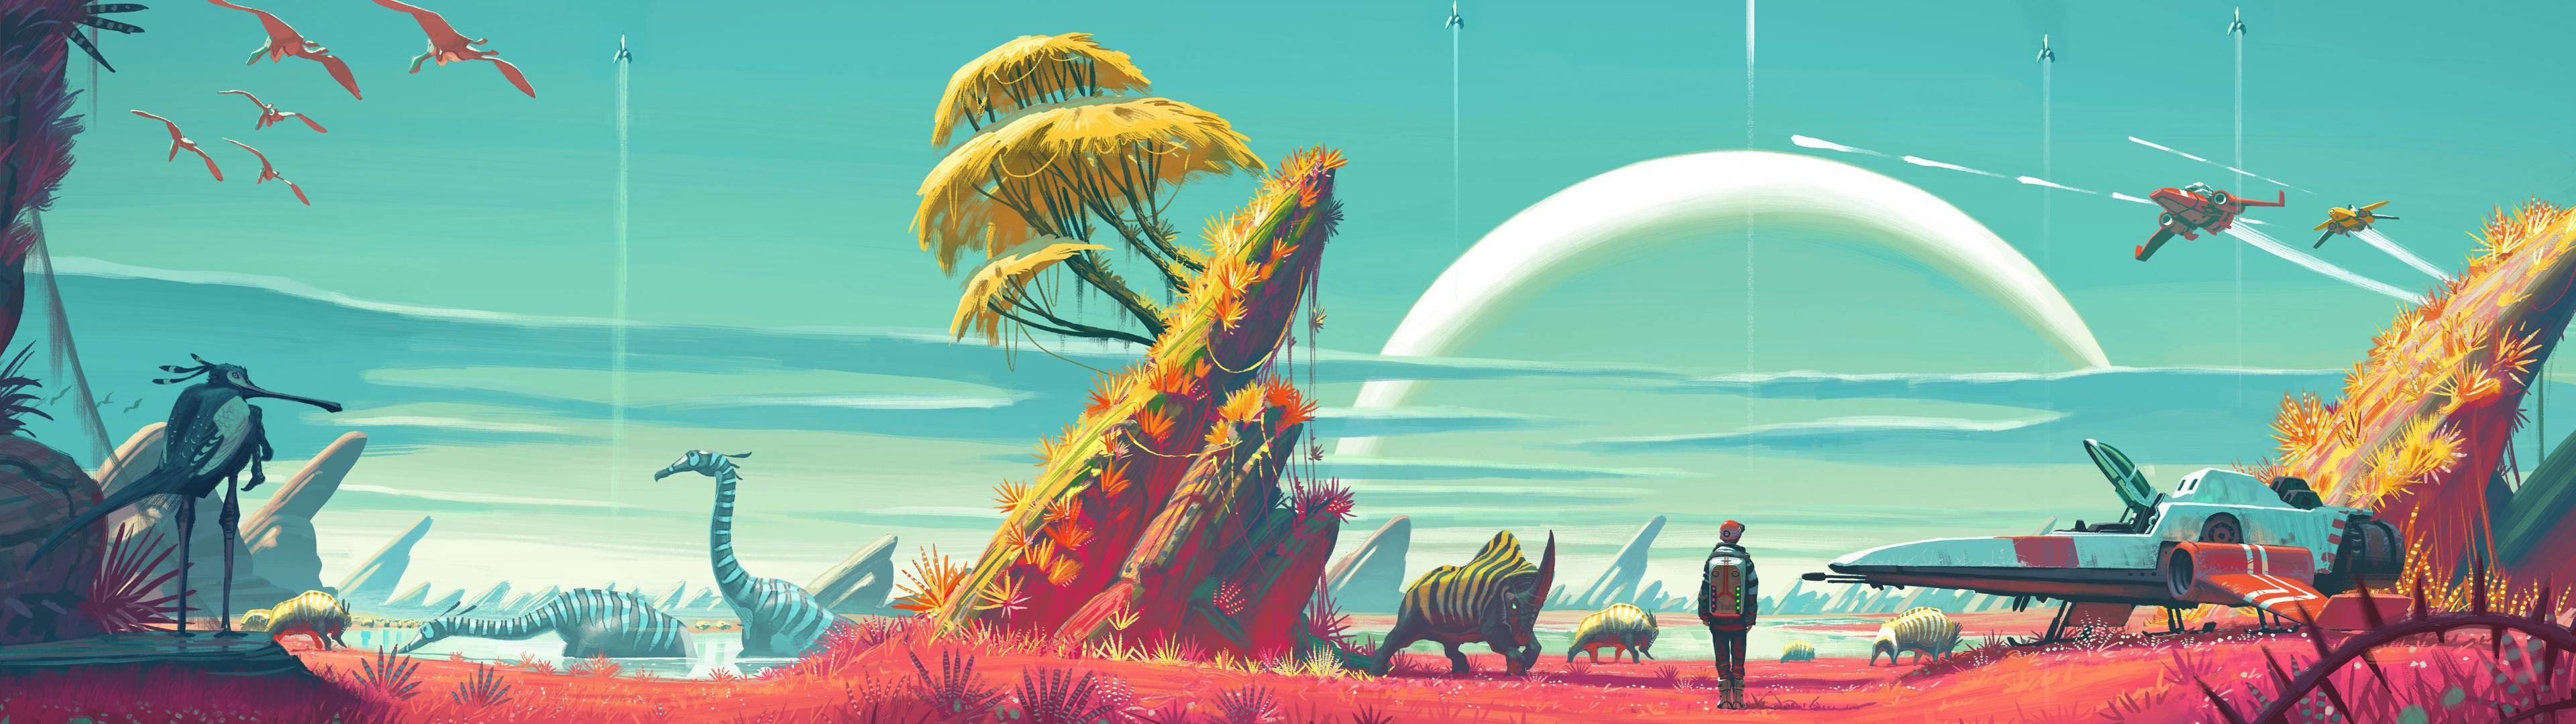 3840x1080 dual screen wallpaper: 3840 X 1080 Dual Screen Wallpaper (59+ Images